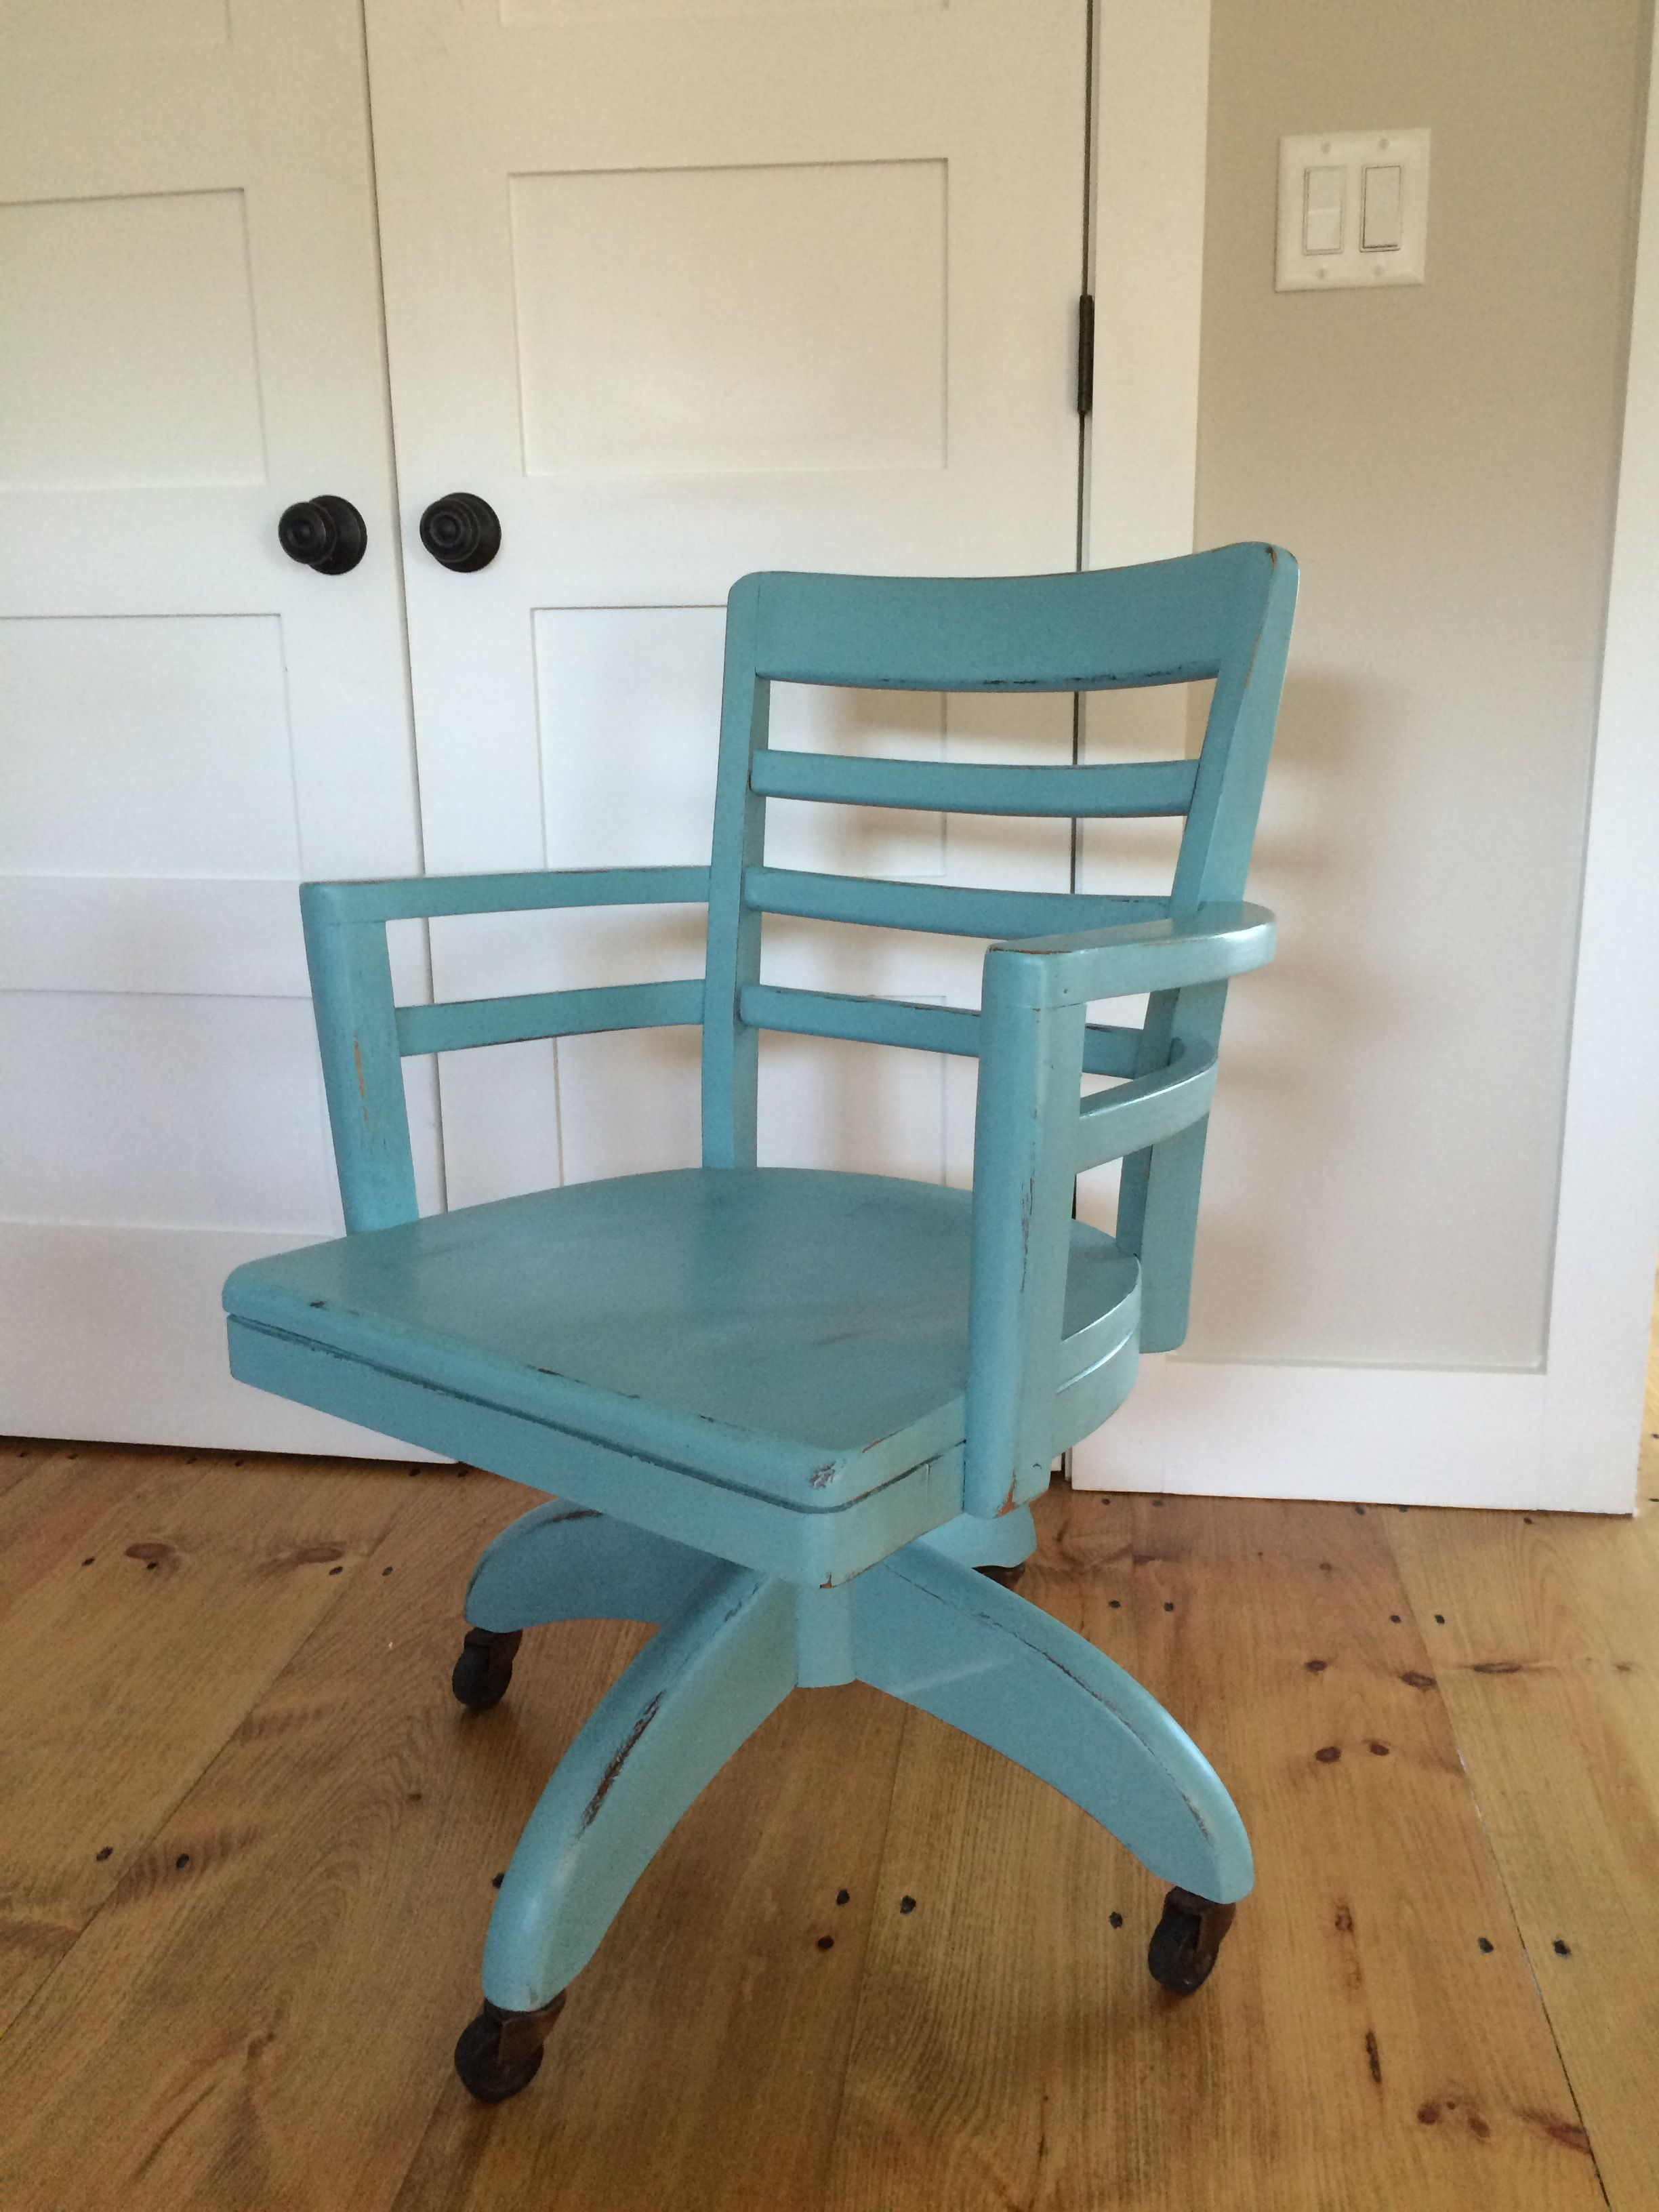 Vintage swivel desk chair painted Provence, lightly distressed and clear wax.